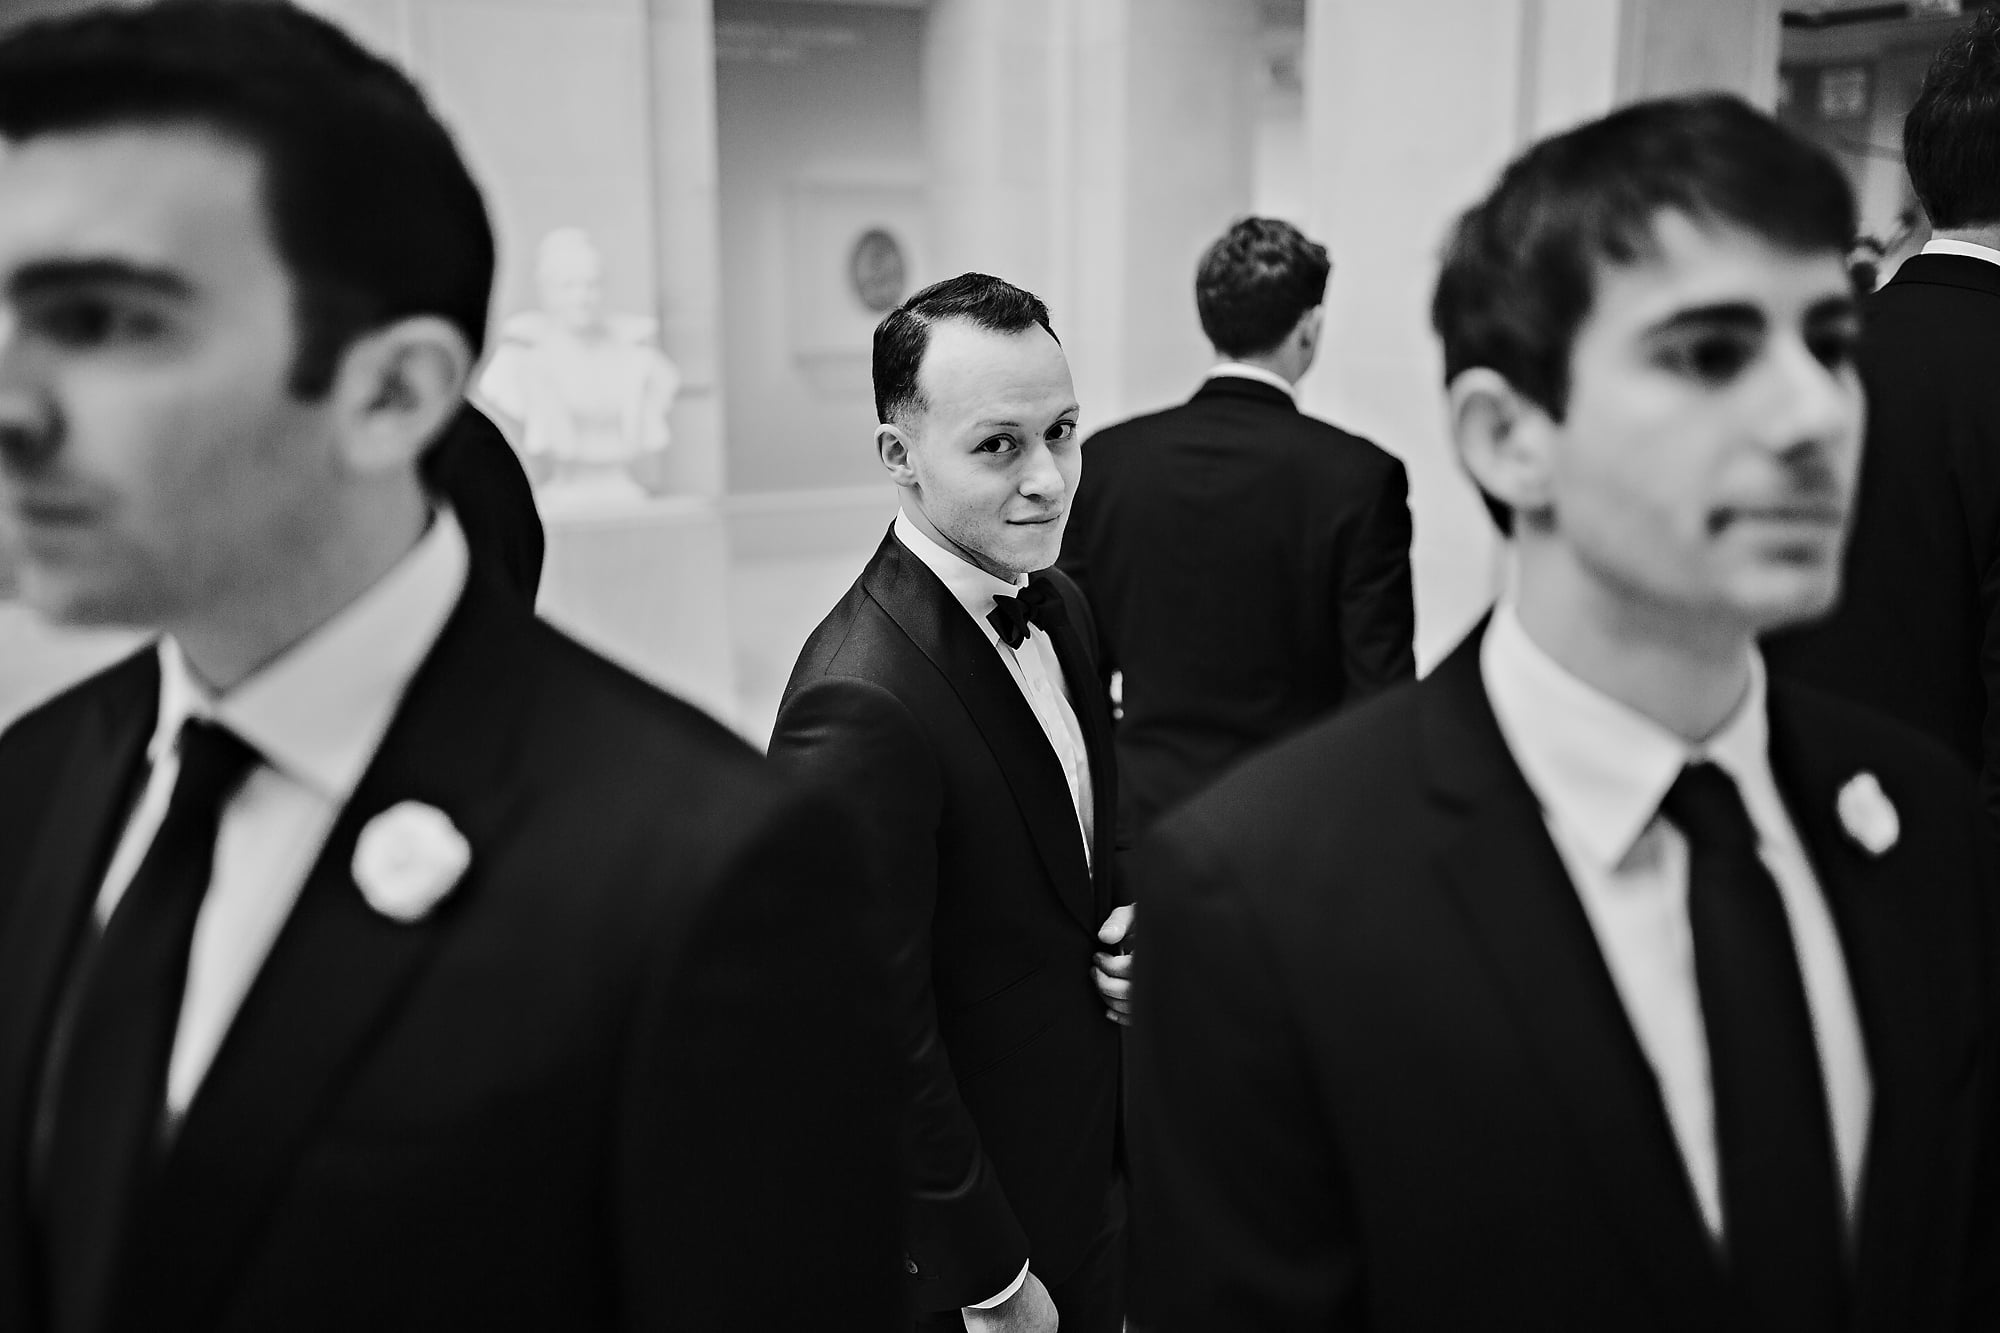 rachel gulotta photography Chicago Wedding-35.jpg